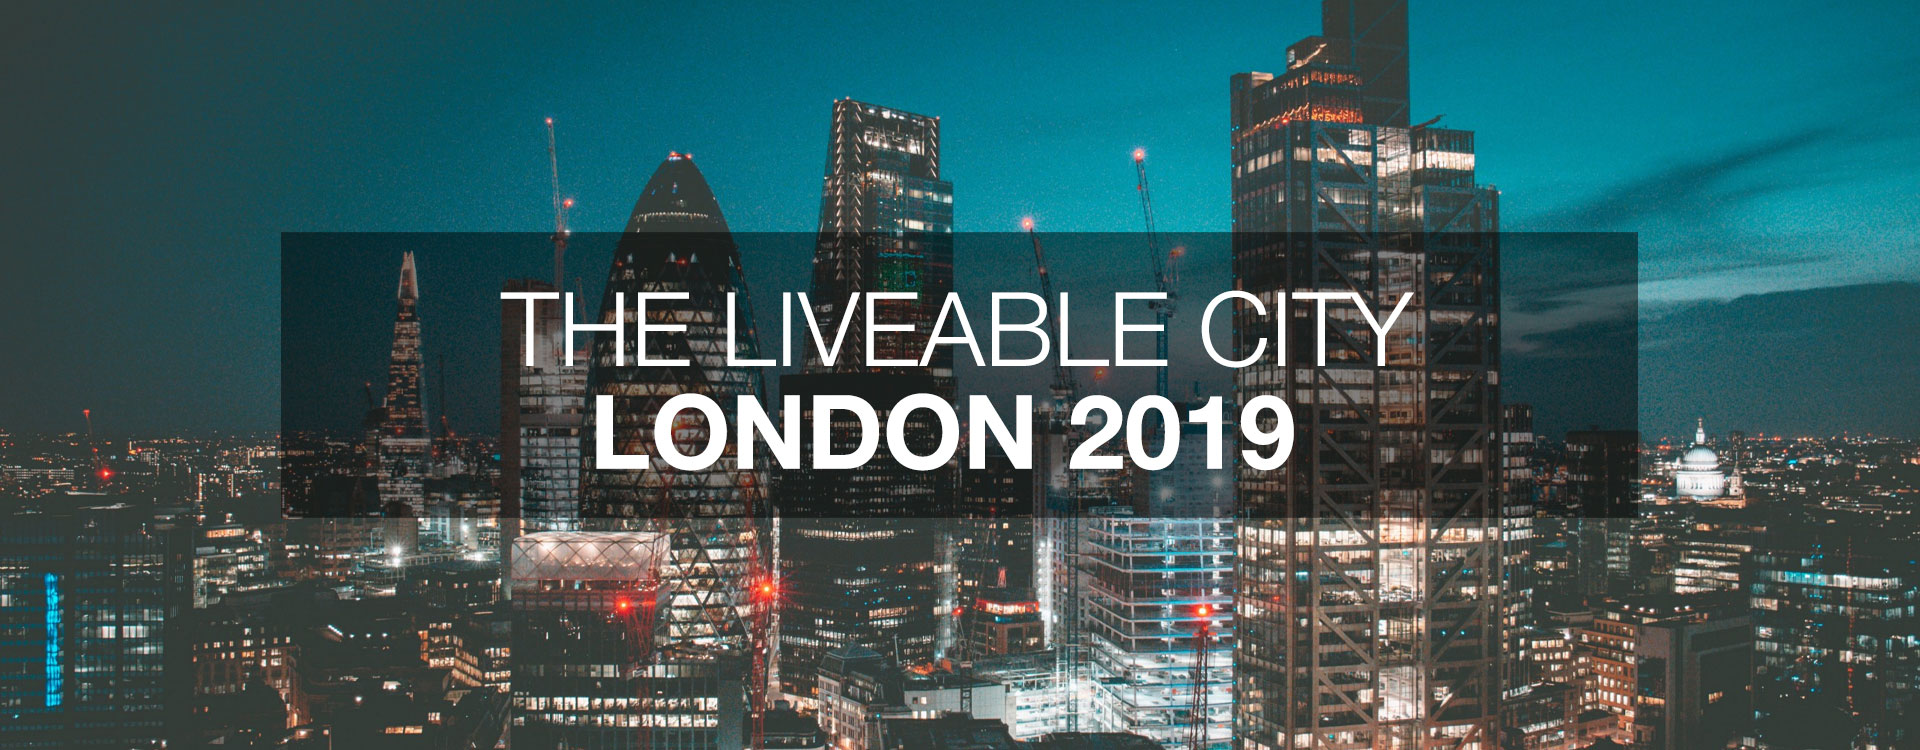 The Liveable City - London 18th-20th June 2019